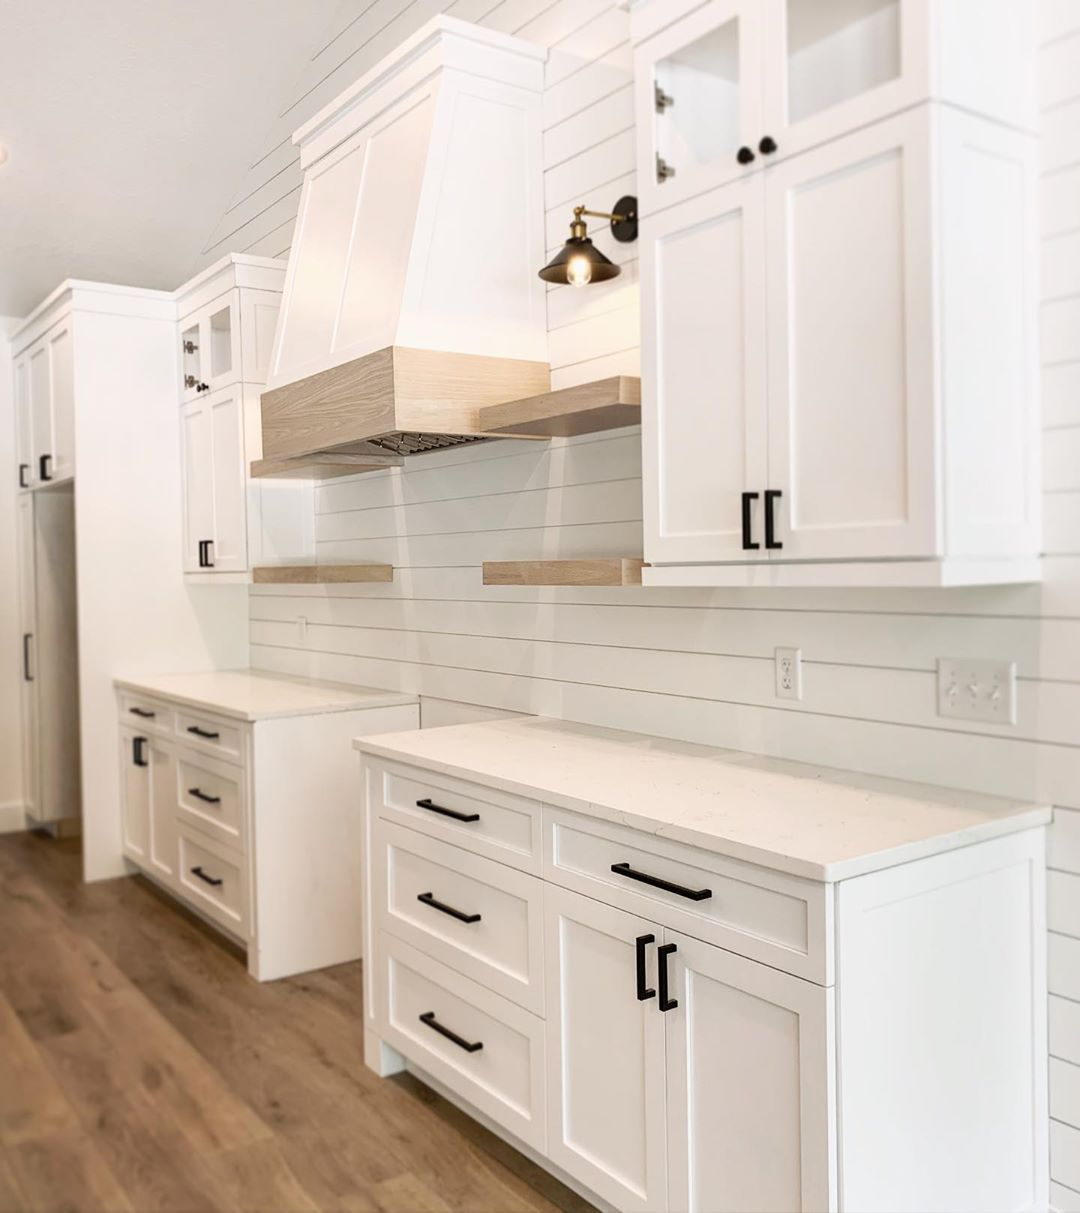 Isaiah Cully On Instagram Shiplap Floating Shelves White Cabinets Black Hardware Arm Lights All Modern Farmhouse Kitchens Home White Cabinets